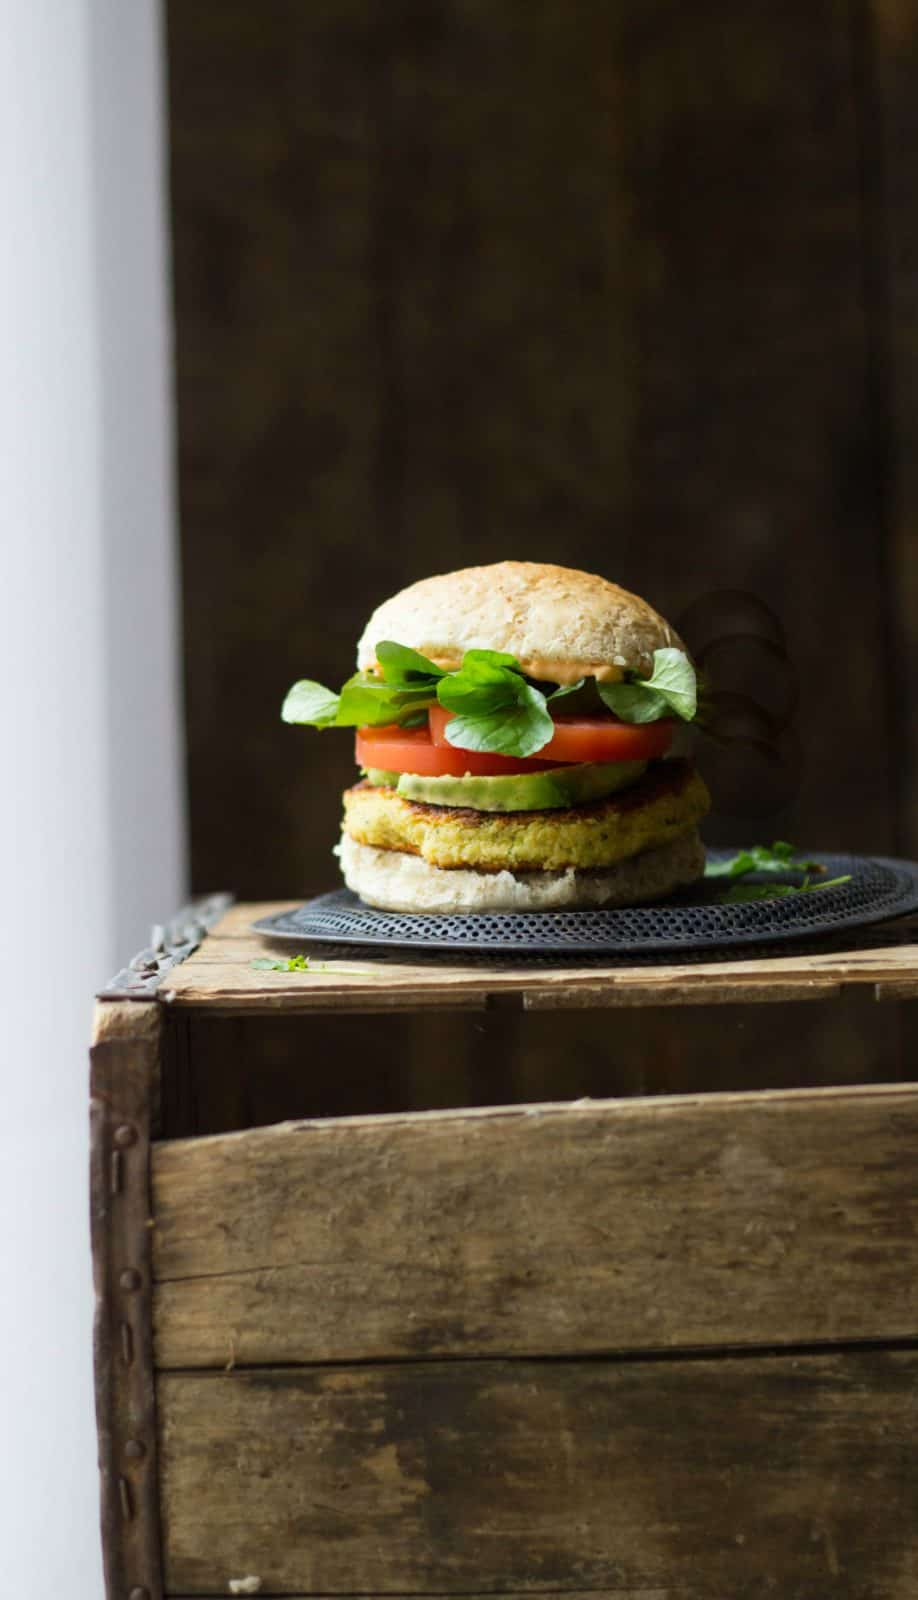 Veggie burgers on a crate.